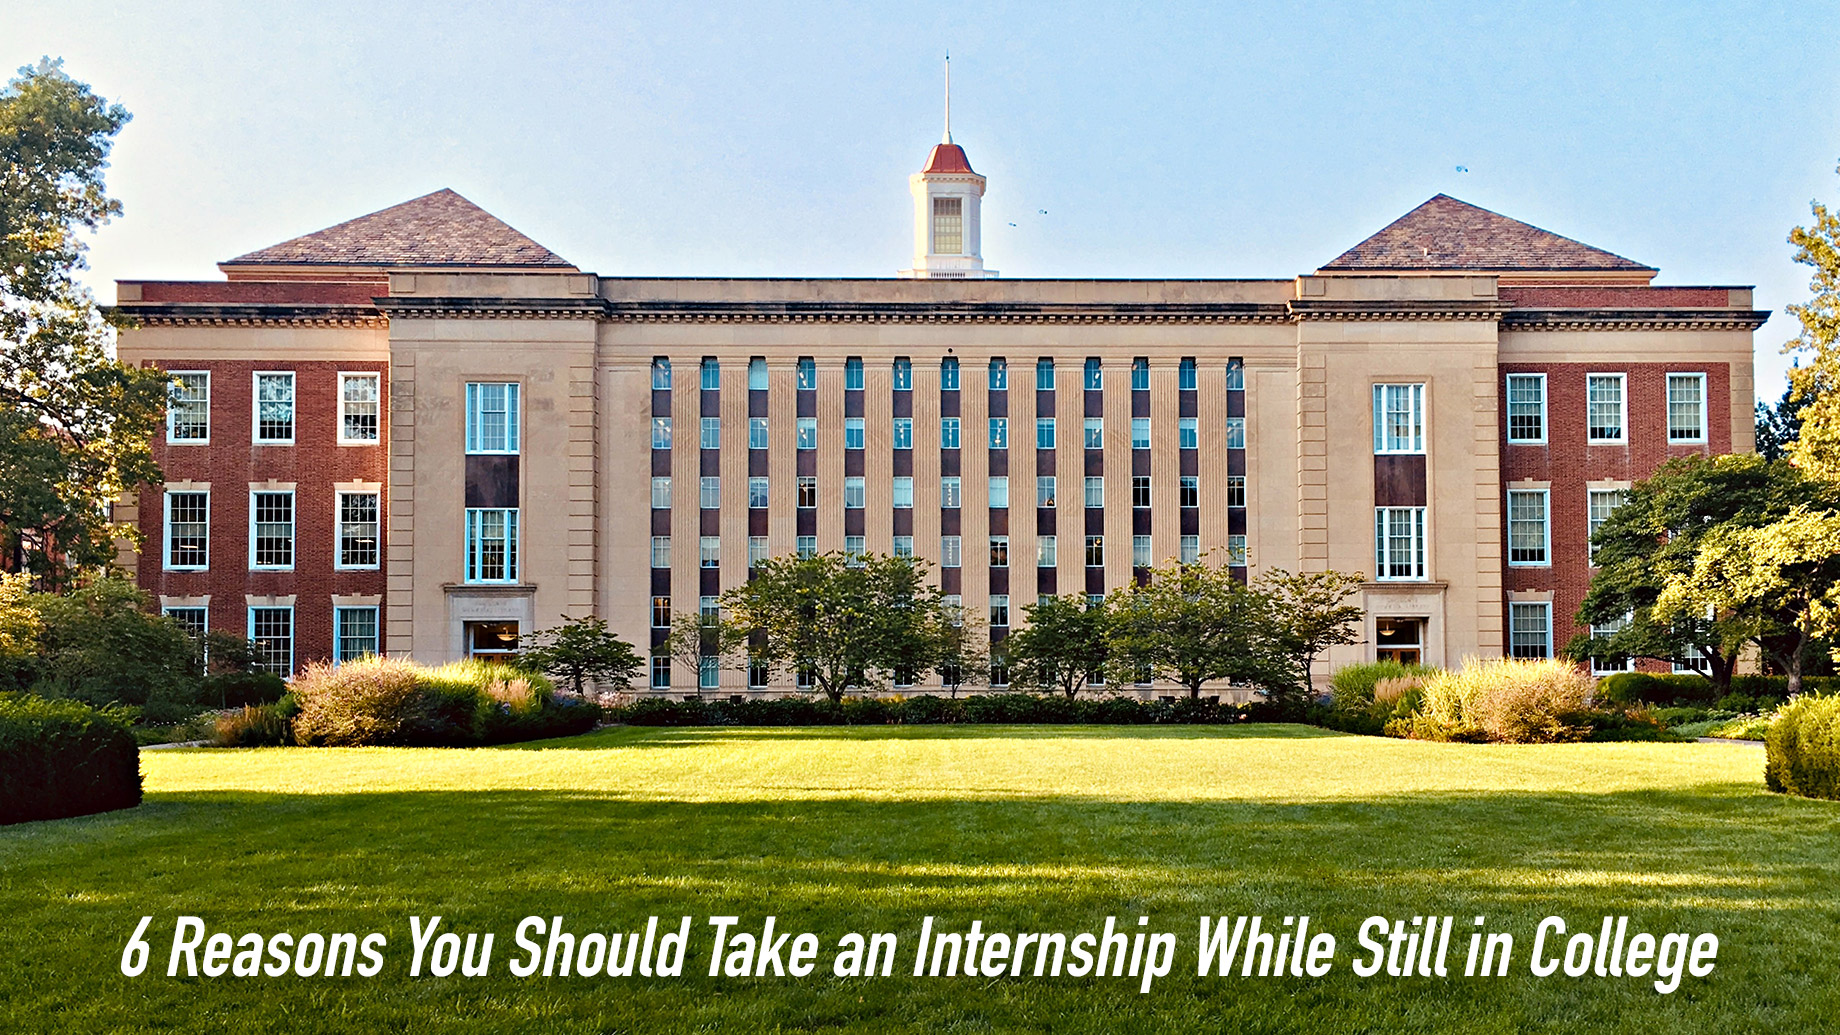 6 Reasons You Should Take an Internship While Still in College